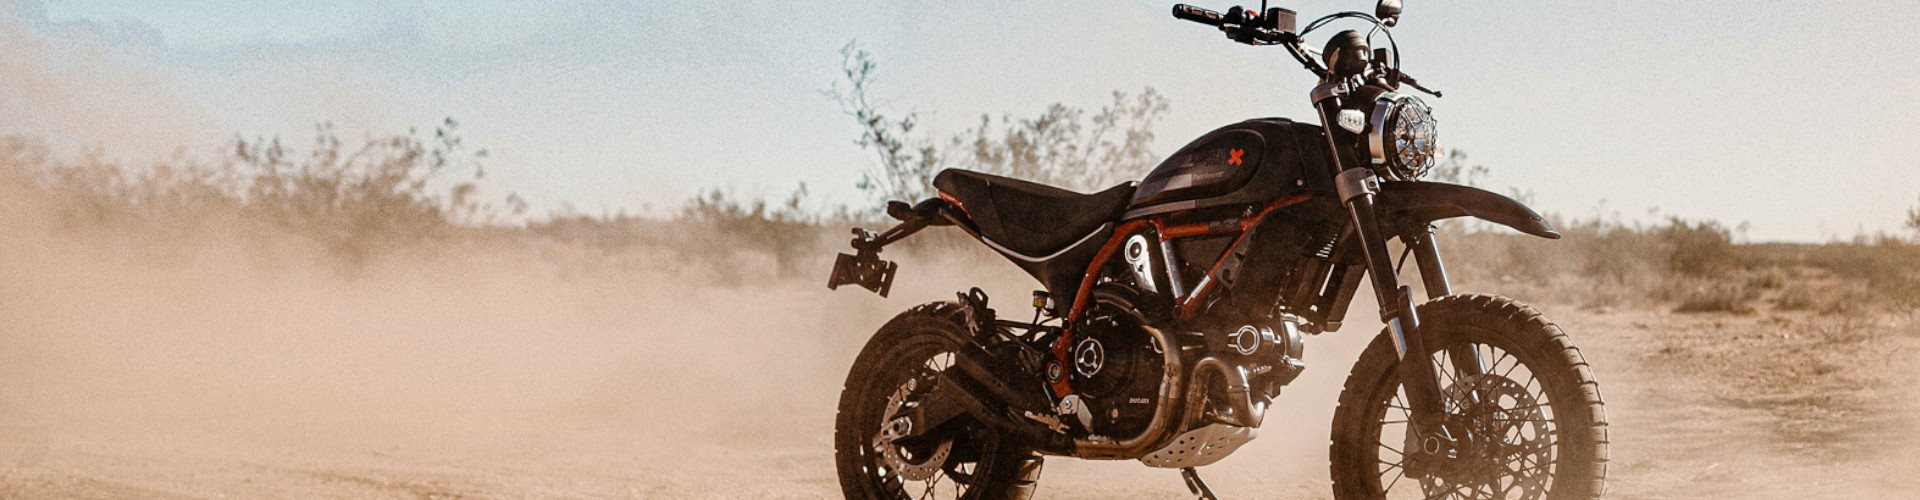 Born in the desert, the new Scrambler Desert Sled Fasthouse limited edition is dedicated for those who love big challenges and wild off-road rides.